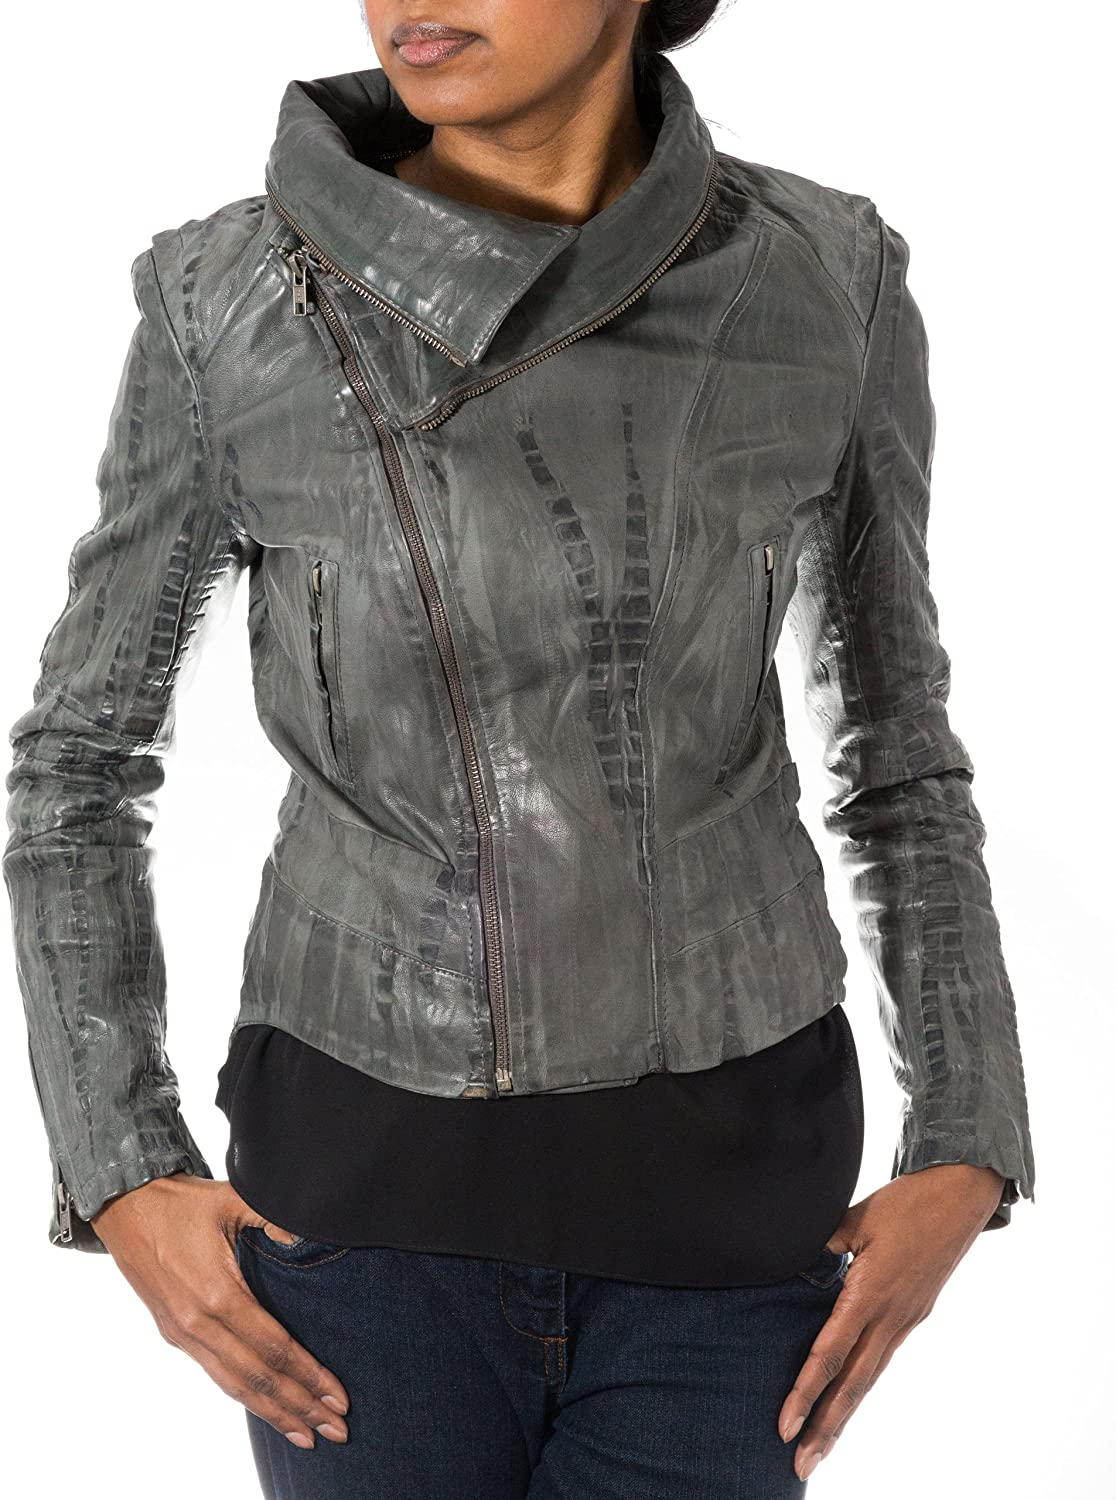 Womens Grey Soft Croc Lamb Skin Leather Biker Jacket with Removable Collar